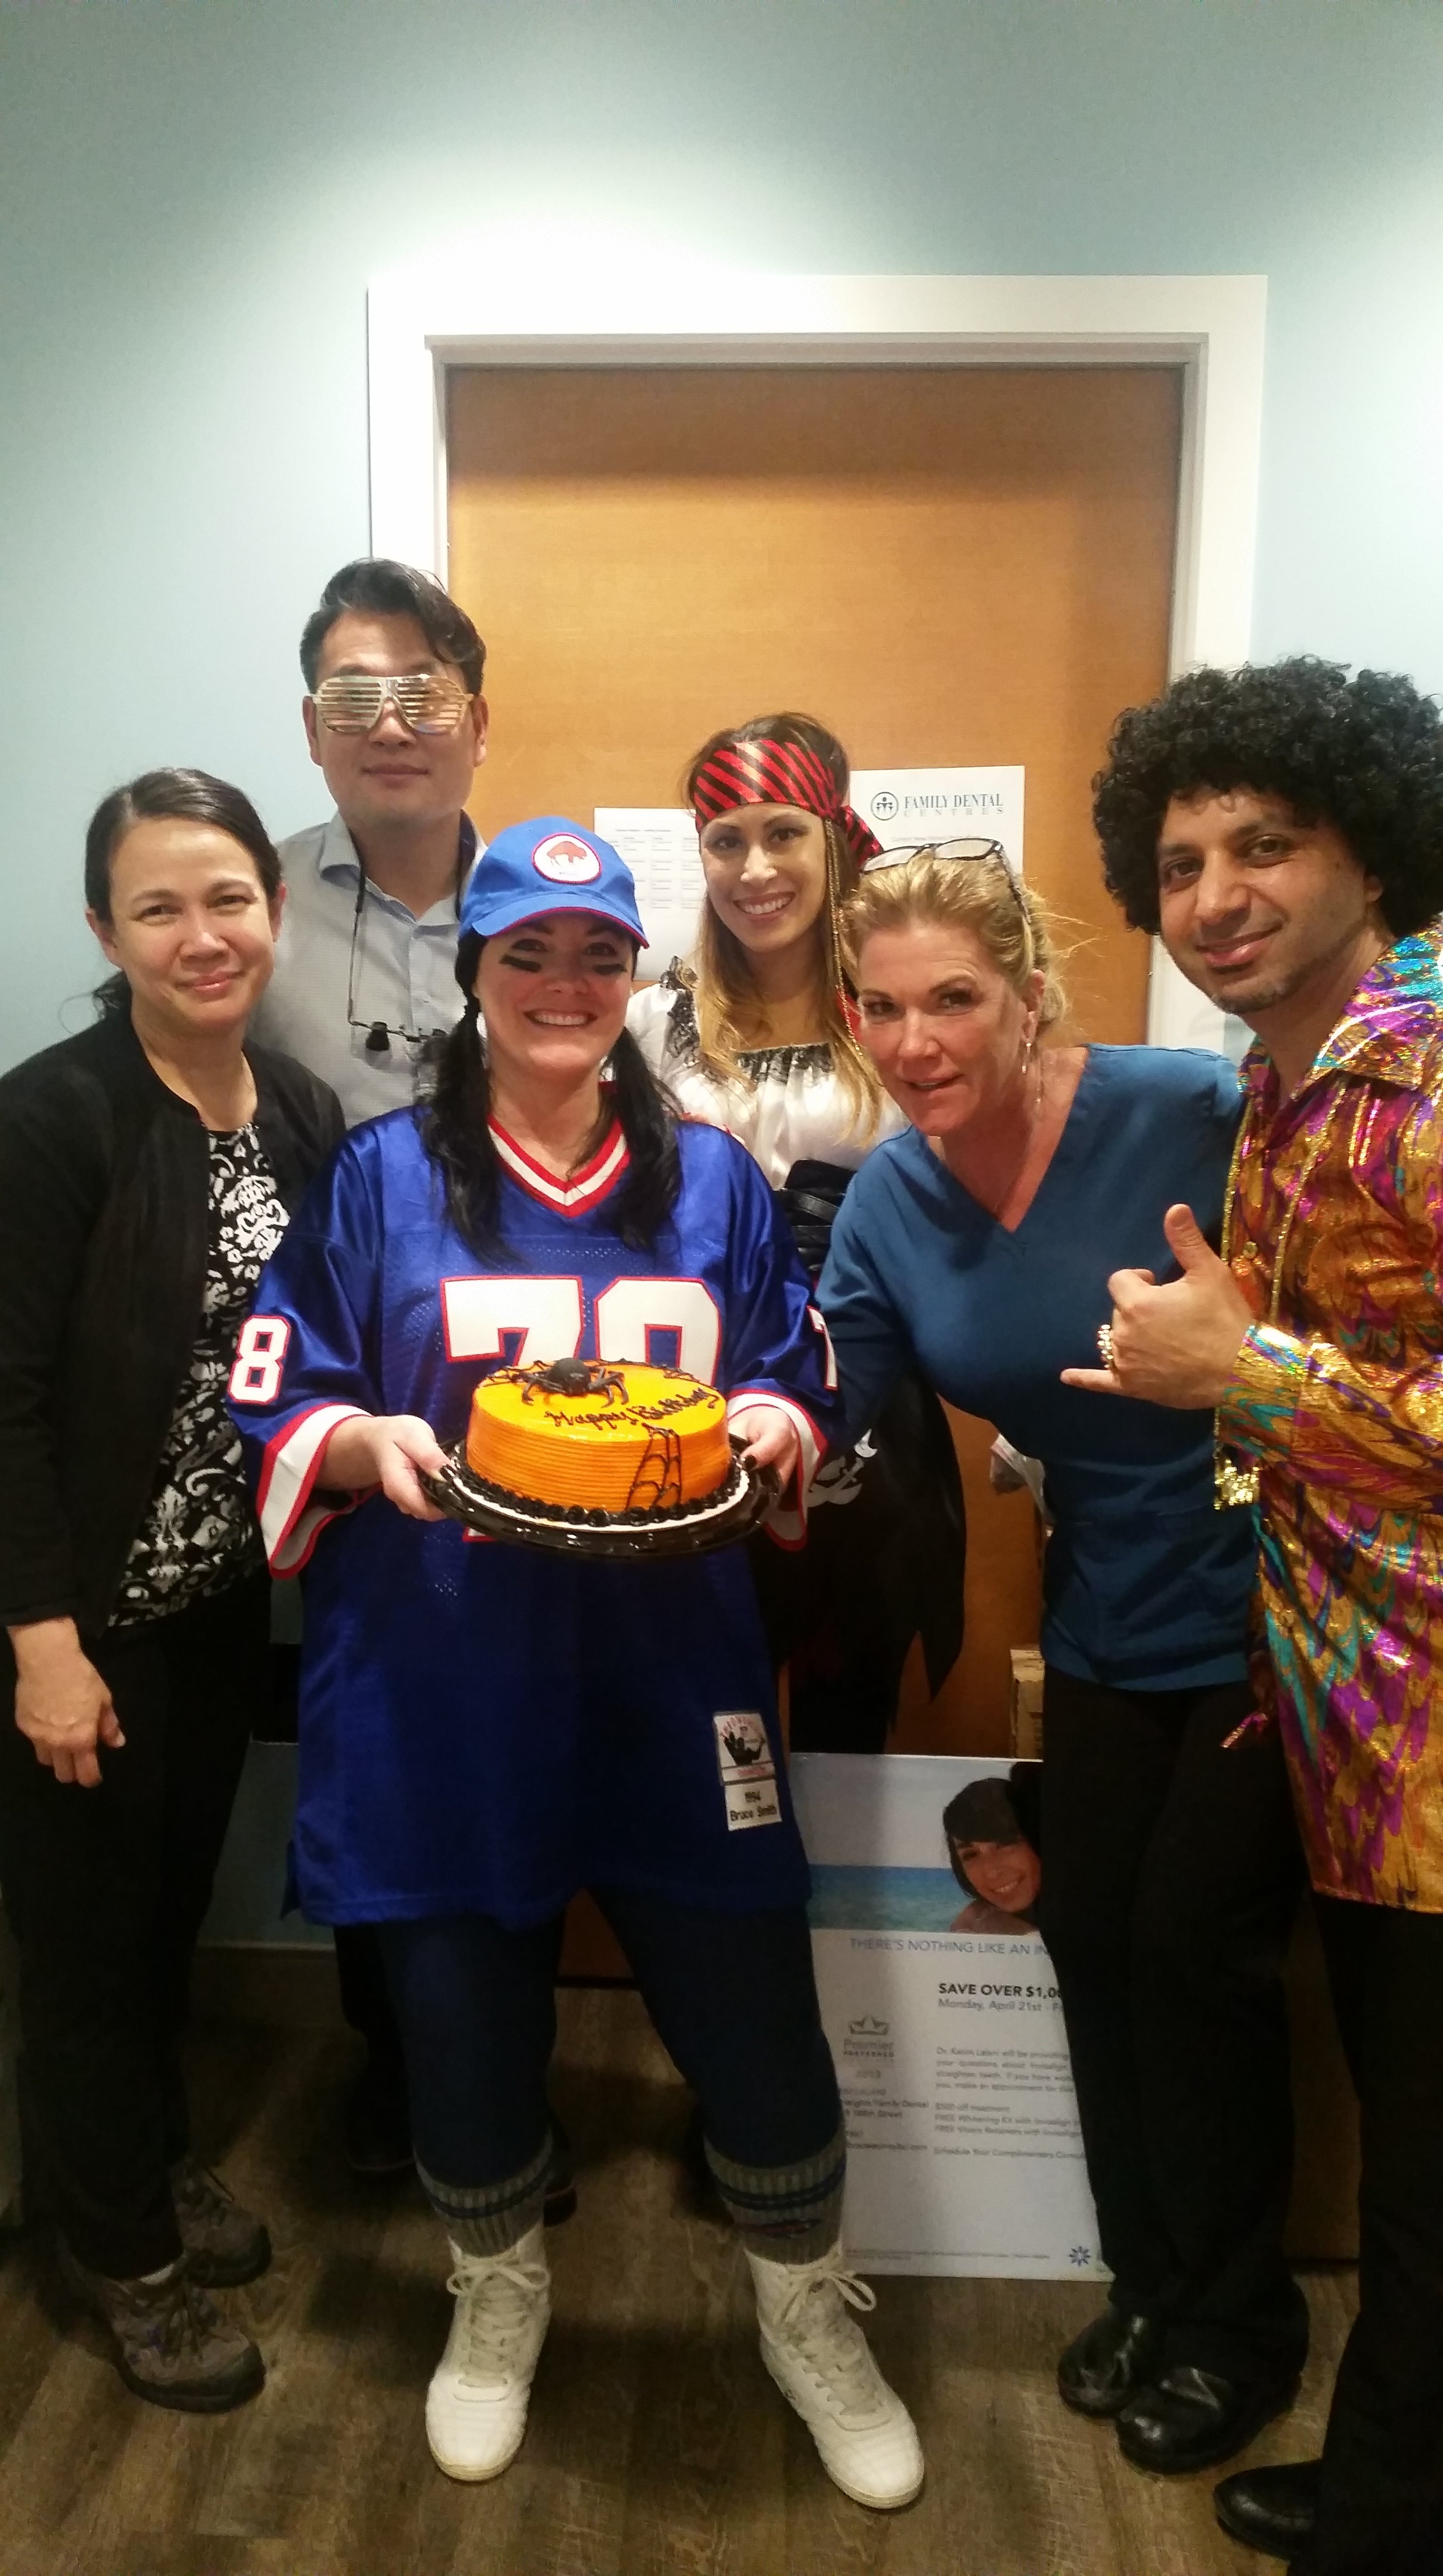 The team at Clayton Heights Family Dental in Surrey all dressed up for Halloween